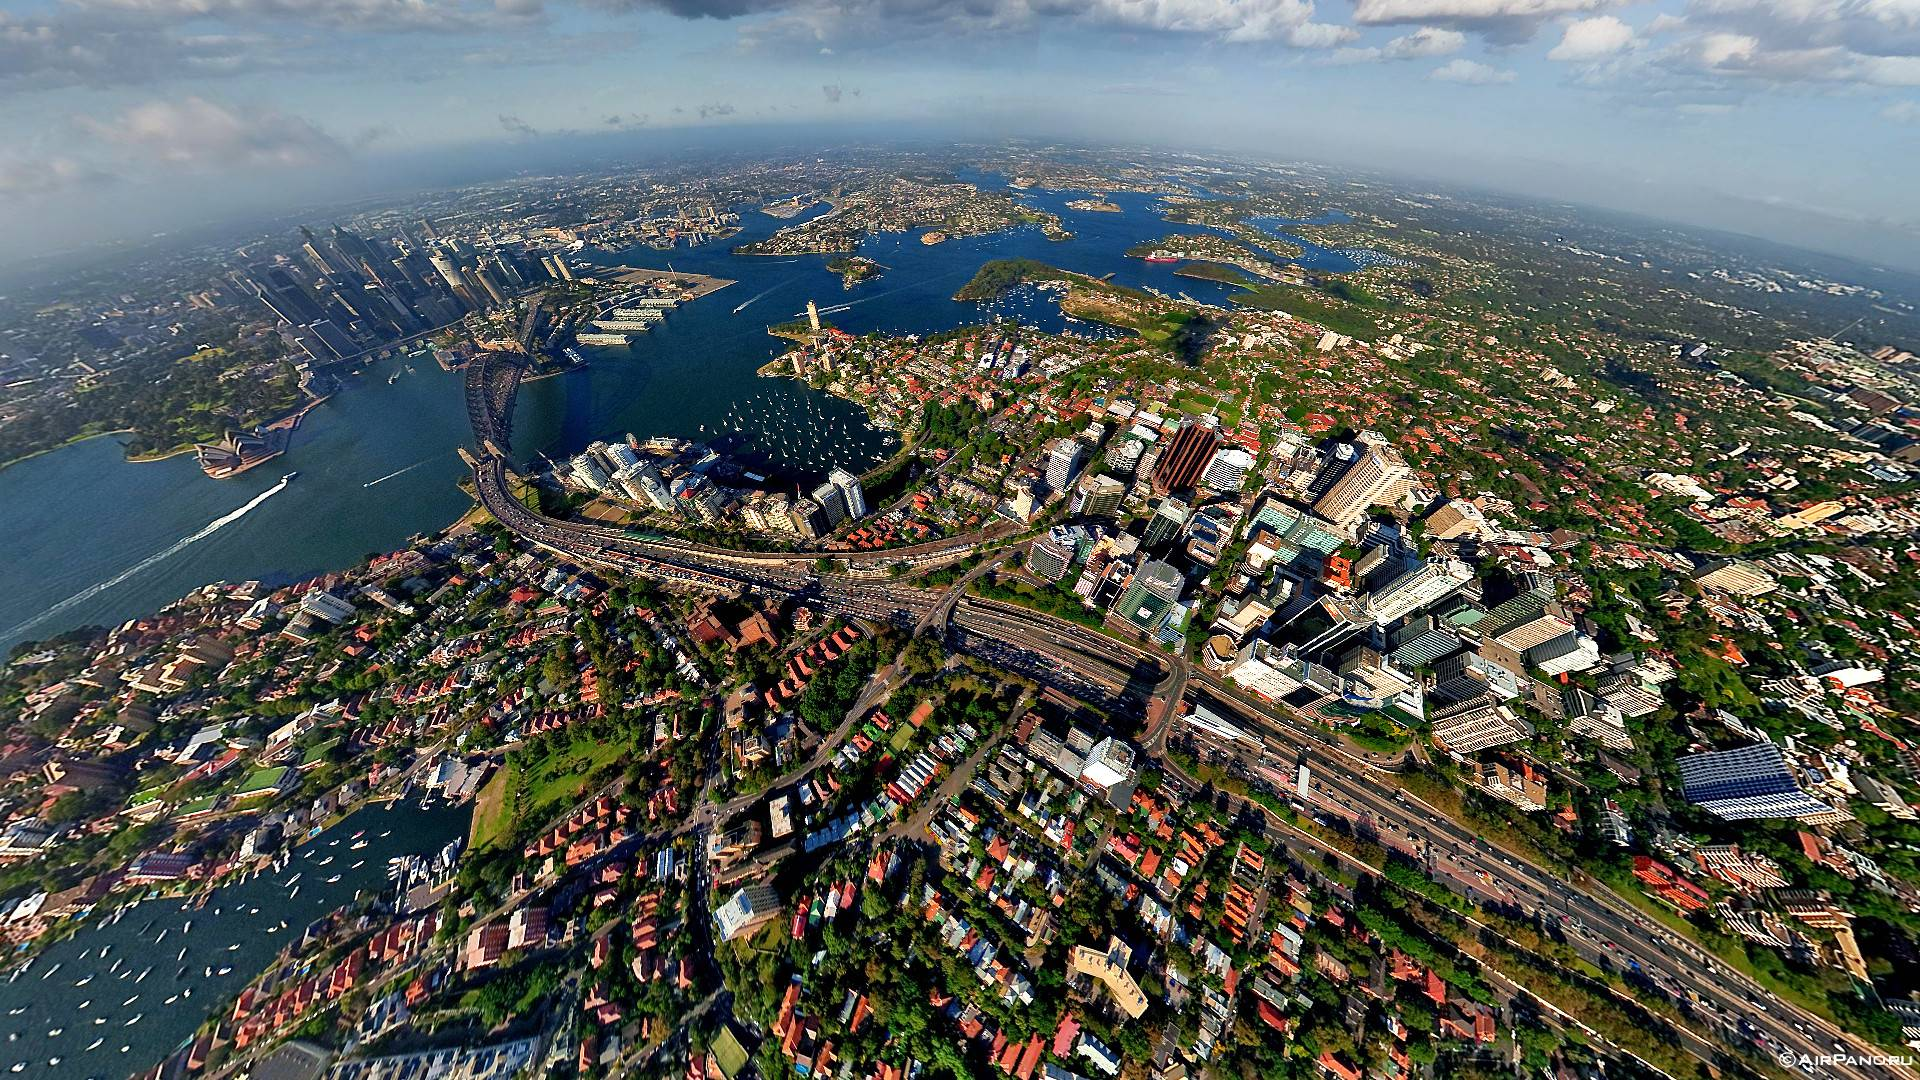 city,vista,aerial,aspect,panorama,sydney,watch,air,eyeshot,urban center,horizon,catch,opinion,view